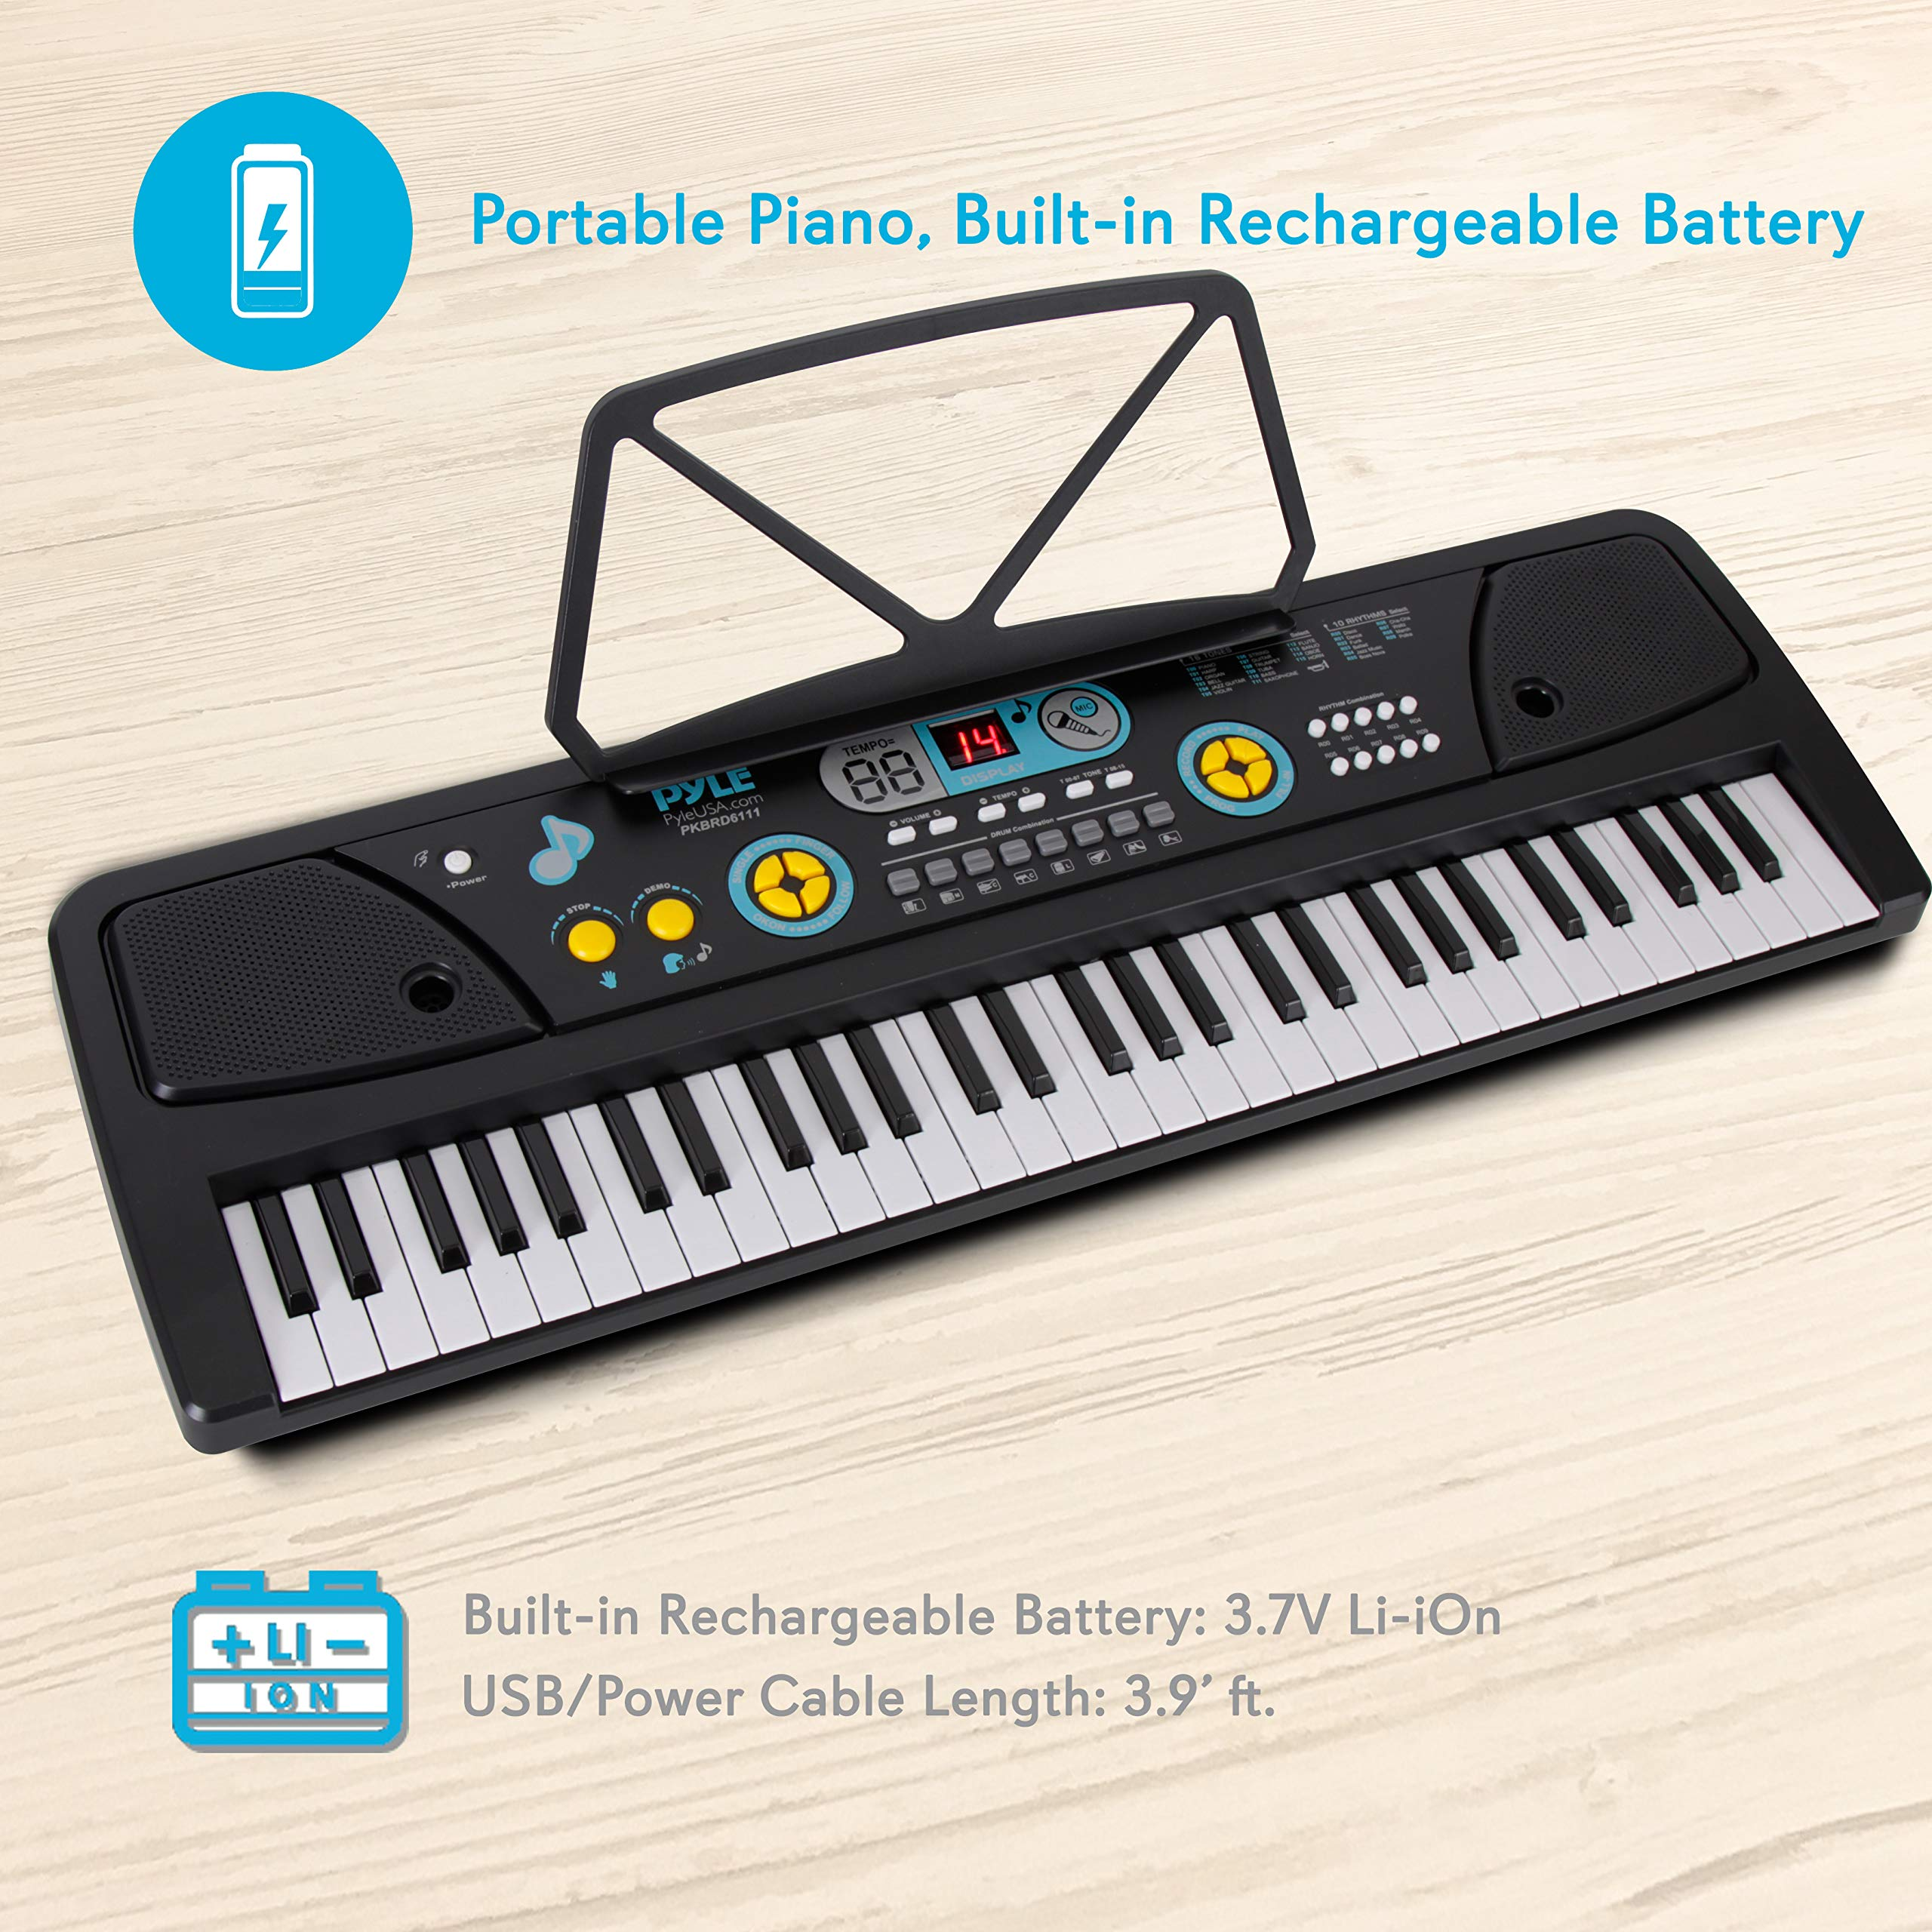 Digital Piano Kids Keyboard - Portable 61 Key Piano Keyboard, Learning Keyboard for Beginners w/ Drum Pad, Recording, Microphone, Music Sheet Stand, Built-in Speaker - Pyle by Directly Cheap (Image #2)